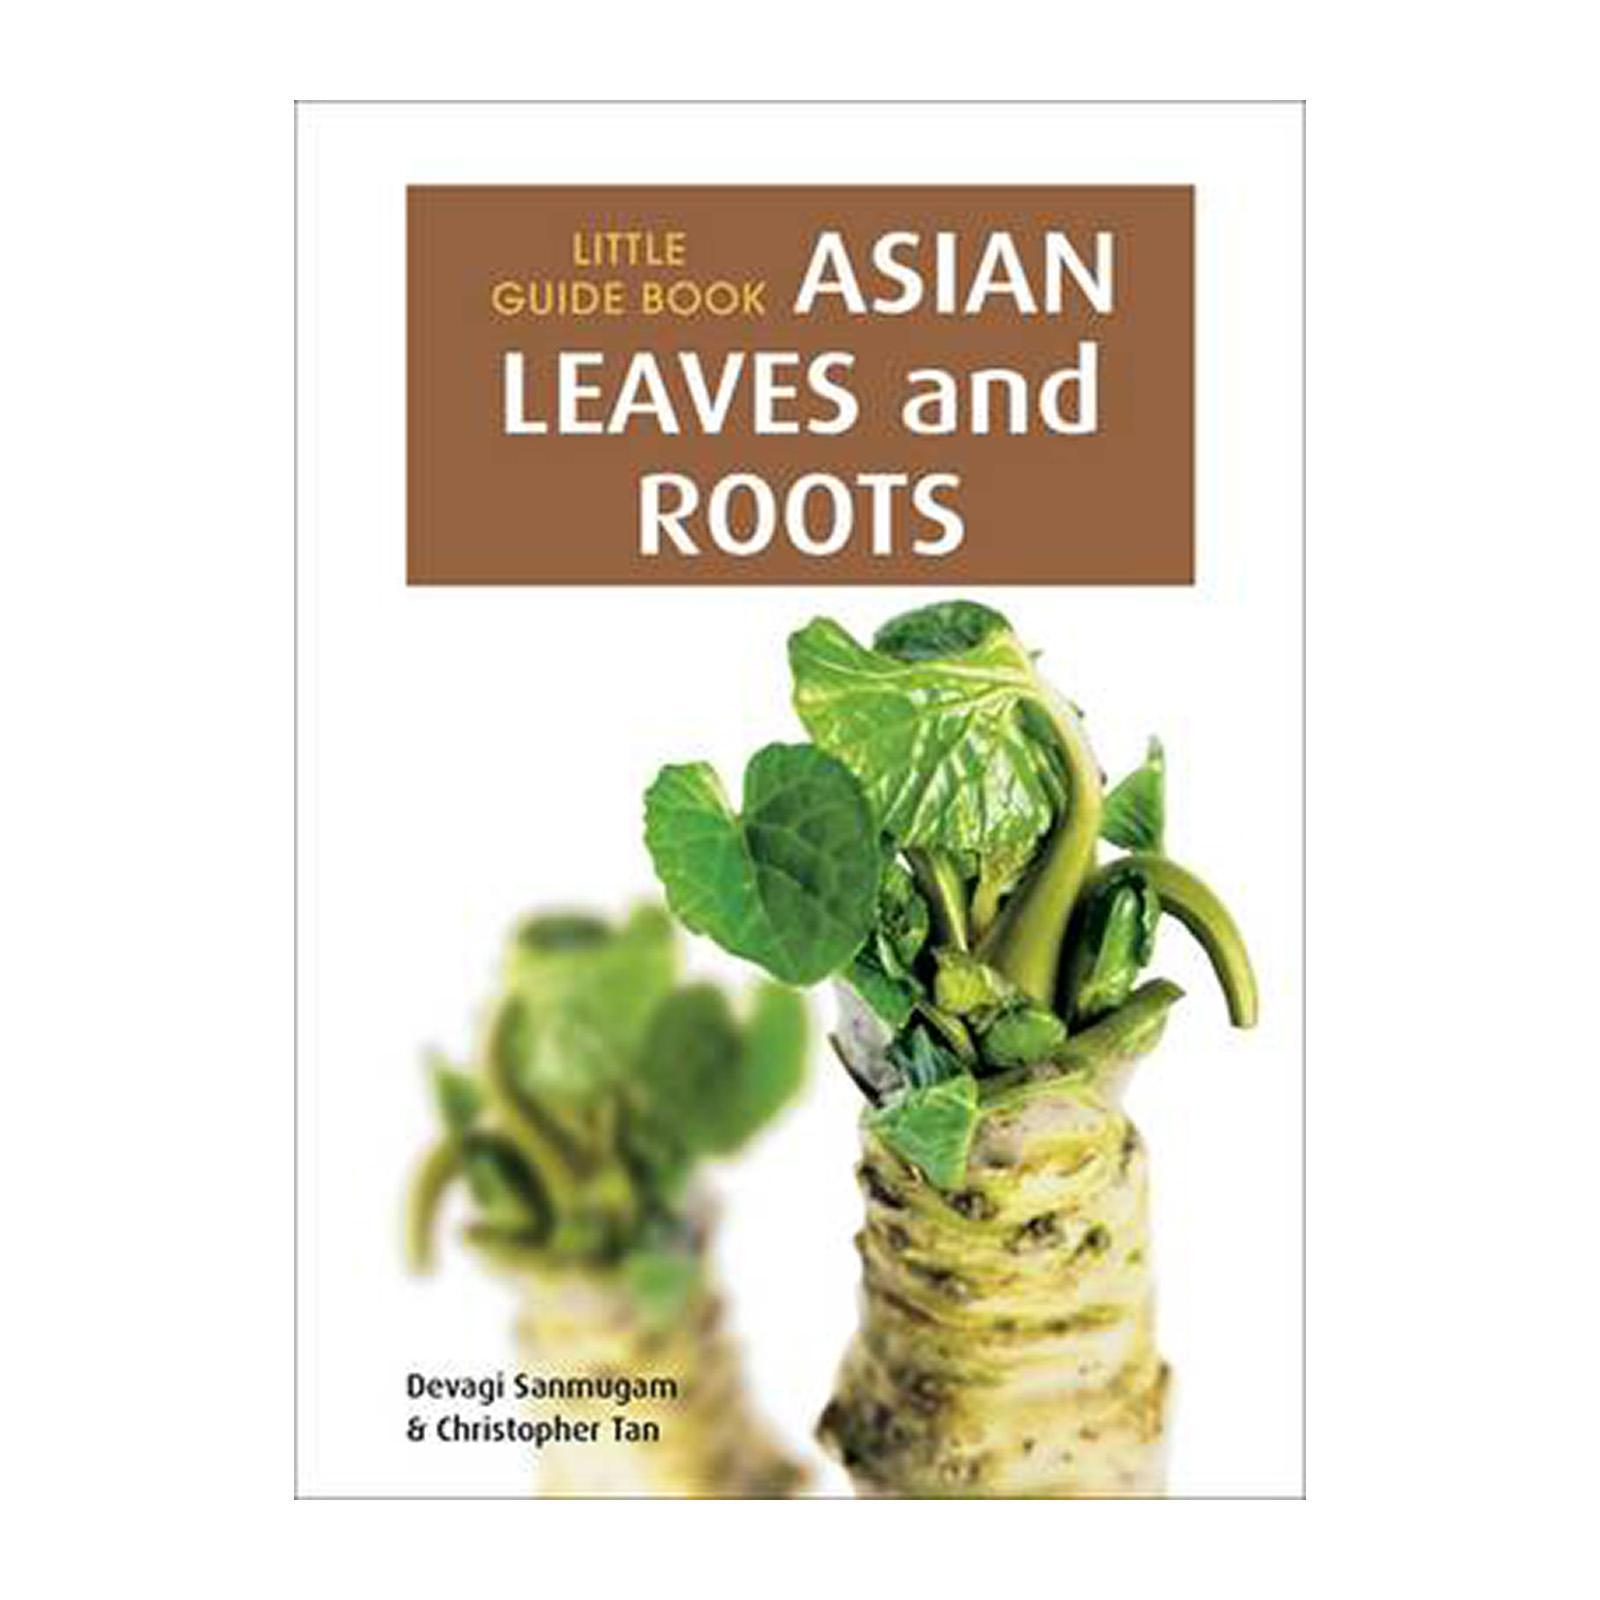 Little Guide Book: Asian Leaves and Roots (Paperback)